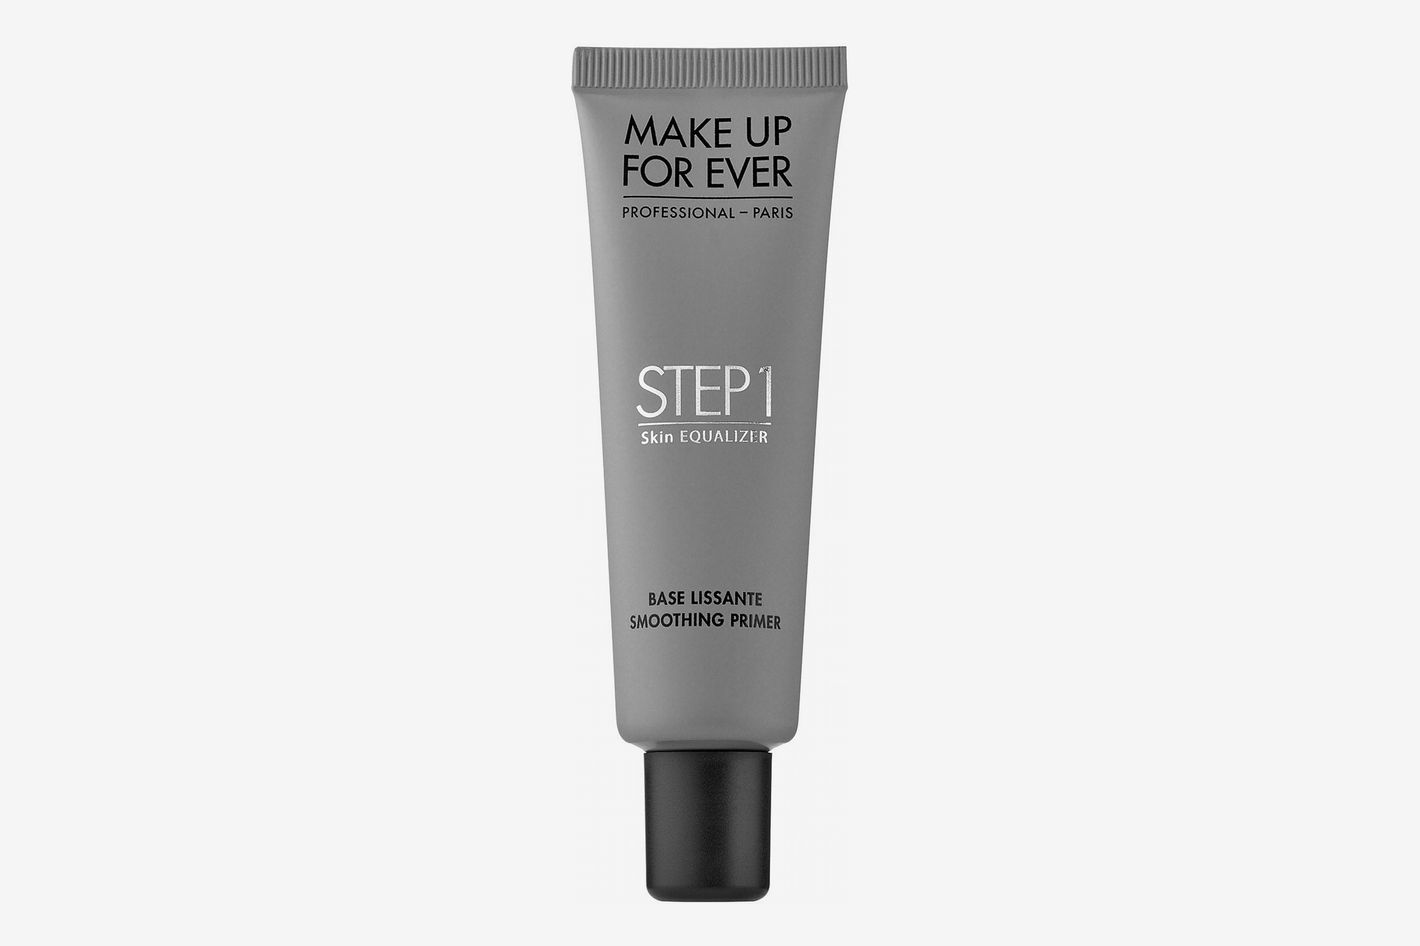 Make Up For Ever Step 1 Equalizing Primer